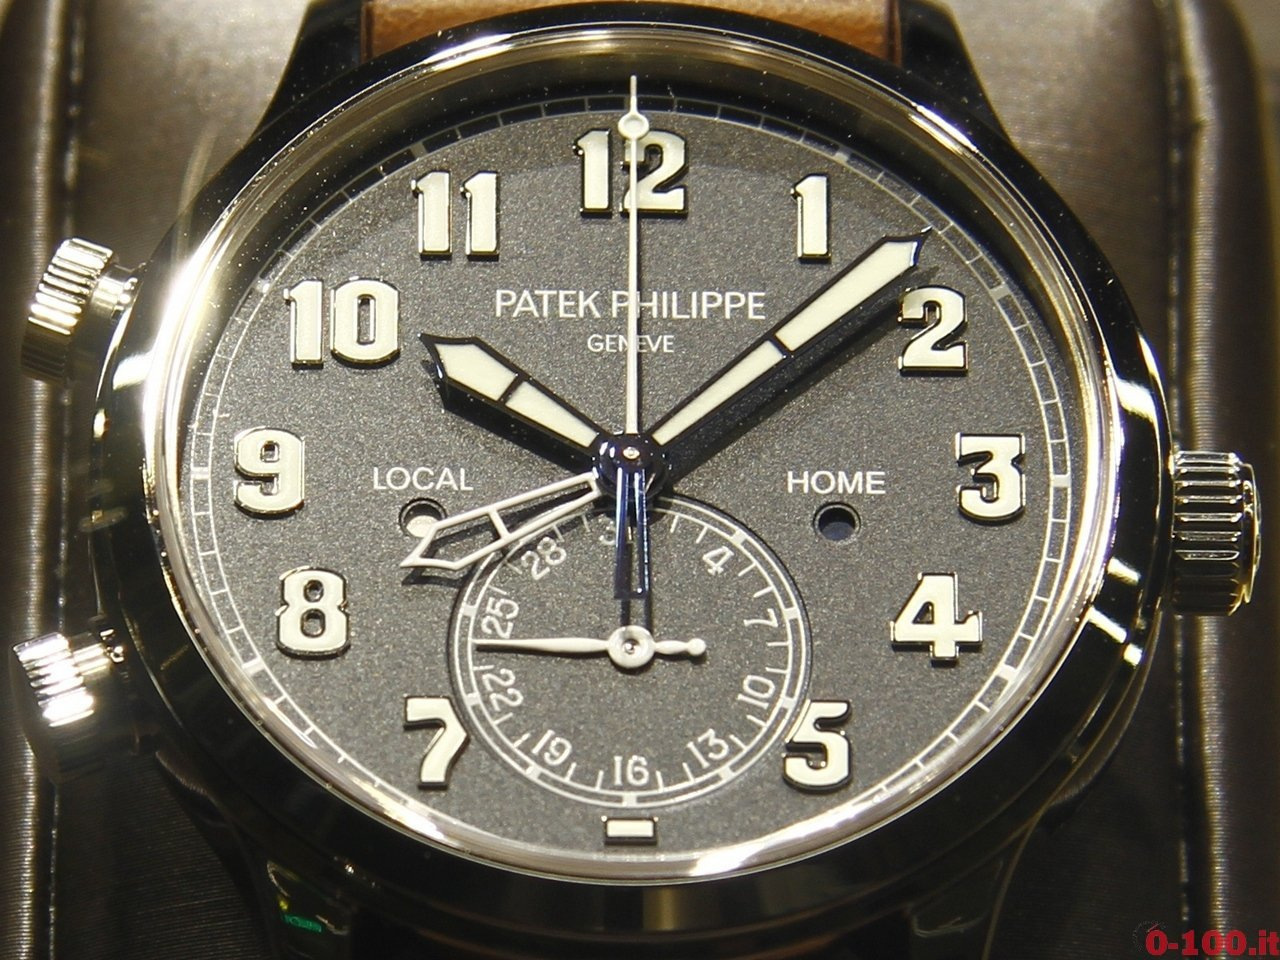 baselworld-2015-patek-philippe-calatrava-pilot-travel-time-0-100_3